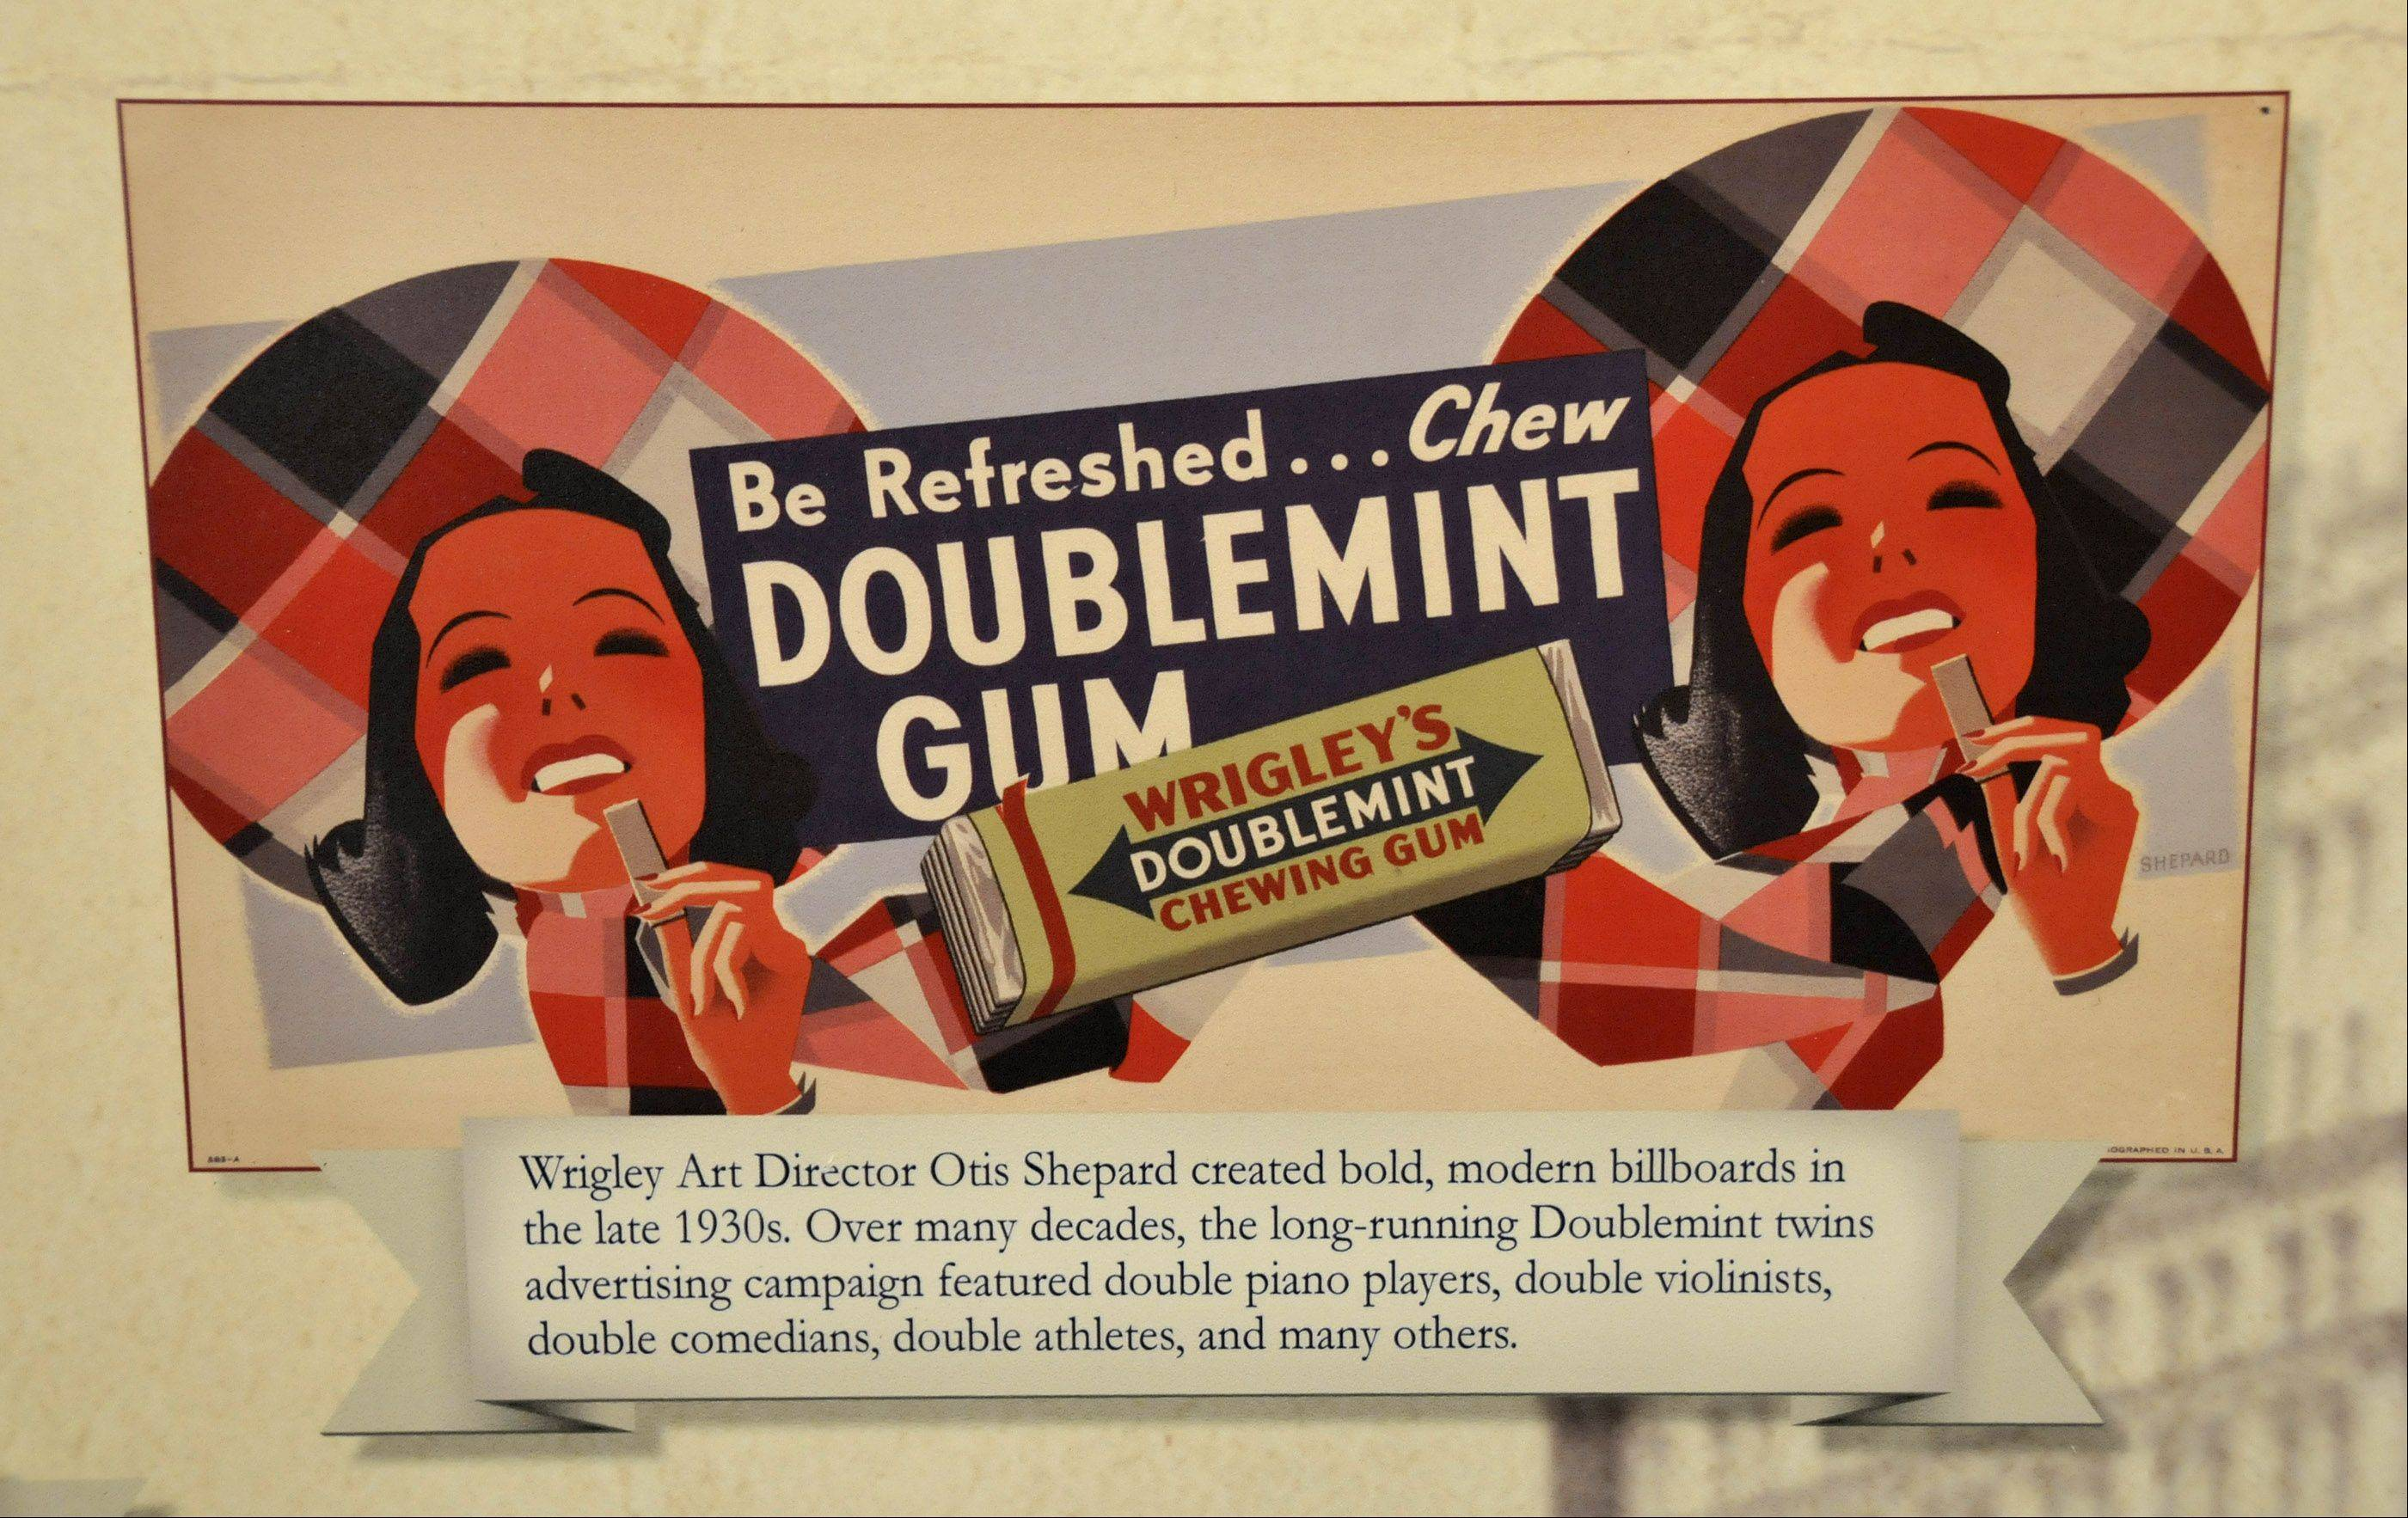 This advertisement is for one of Wrigley's favorite gum flavors.